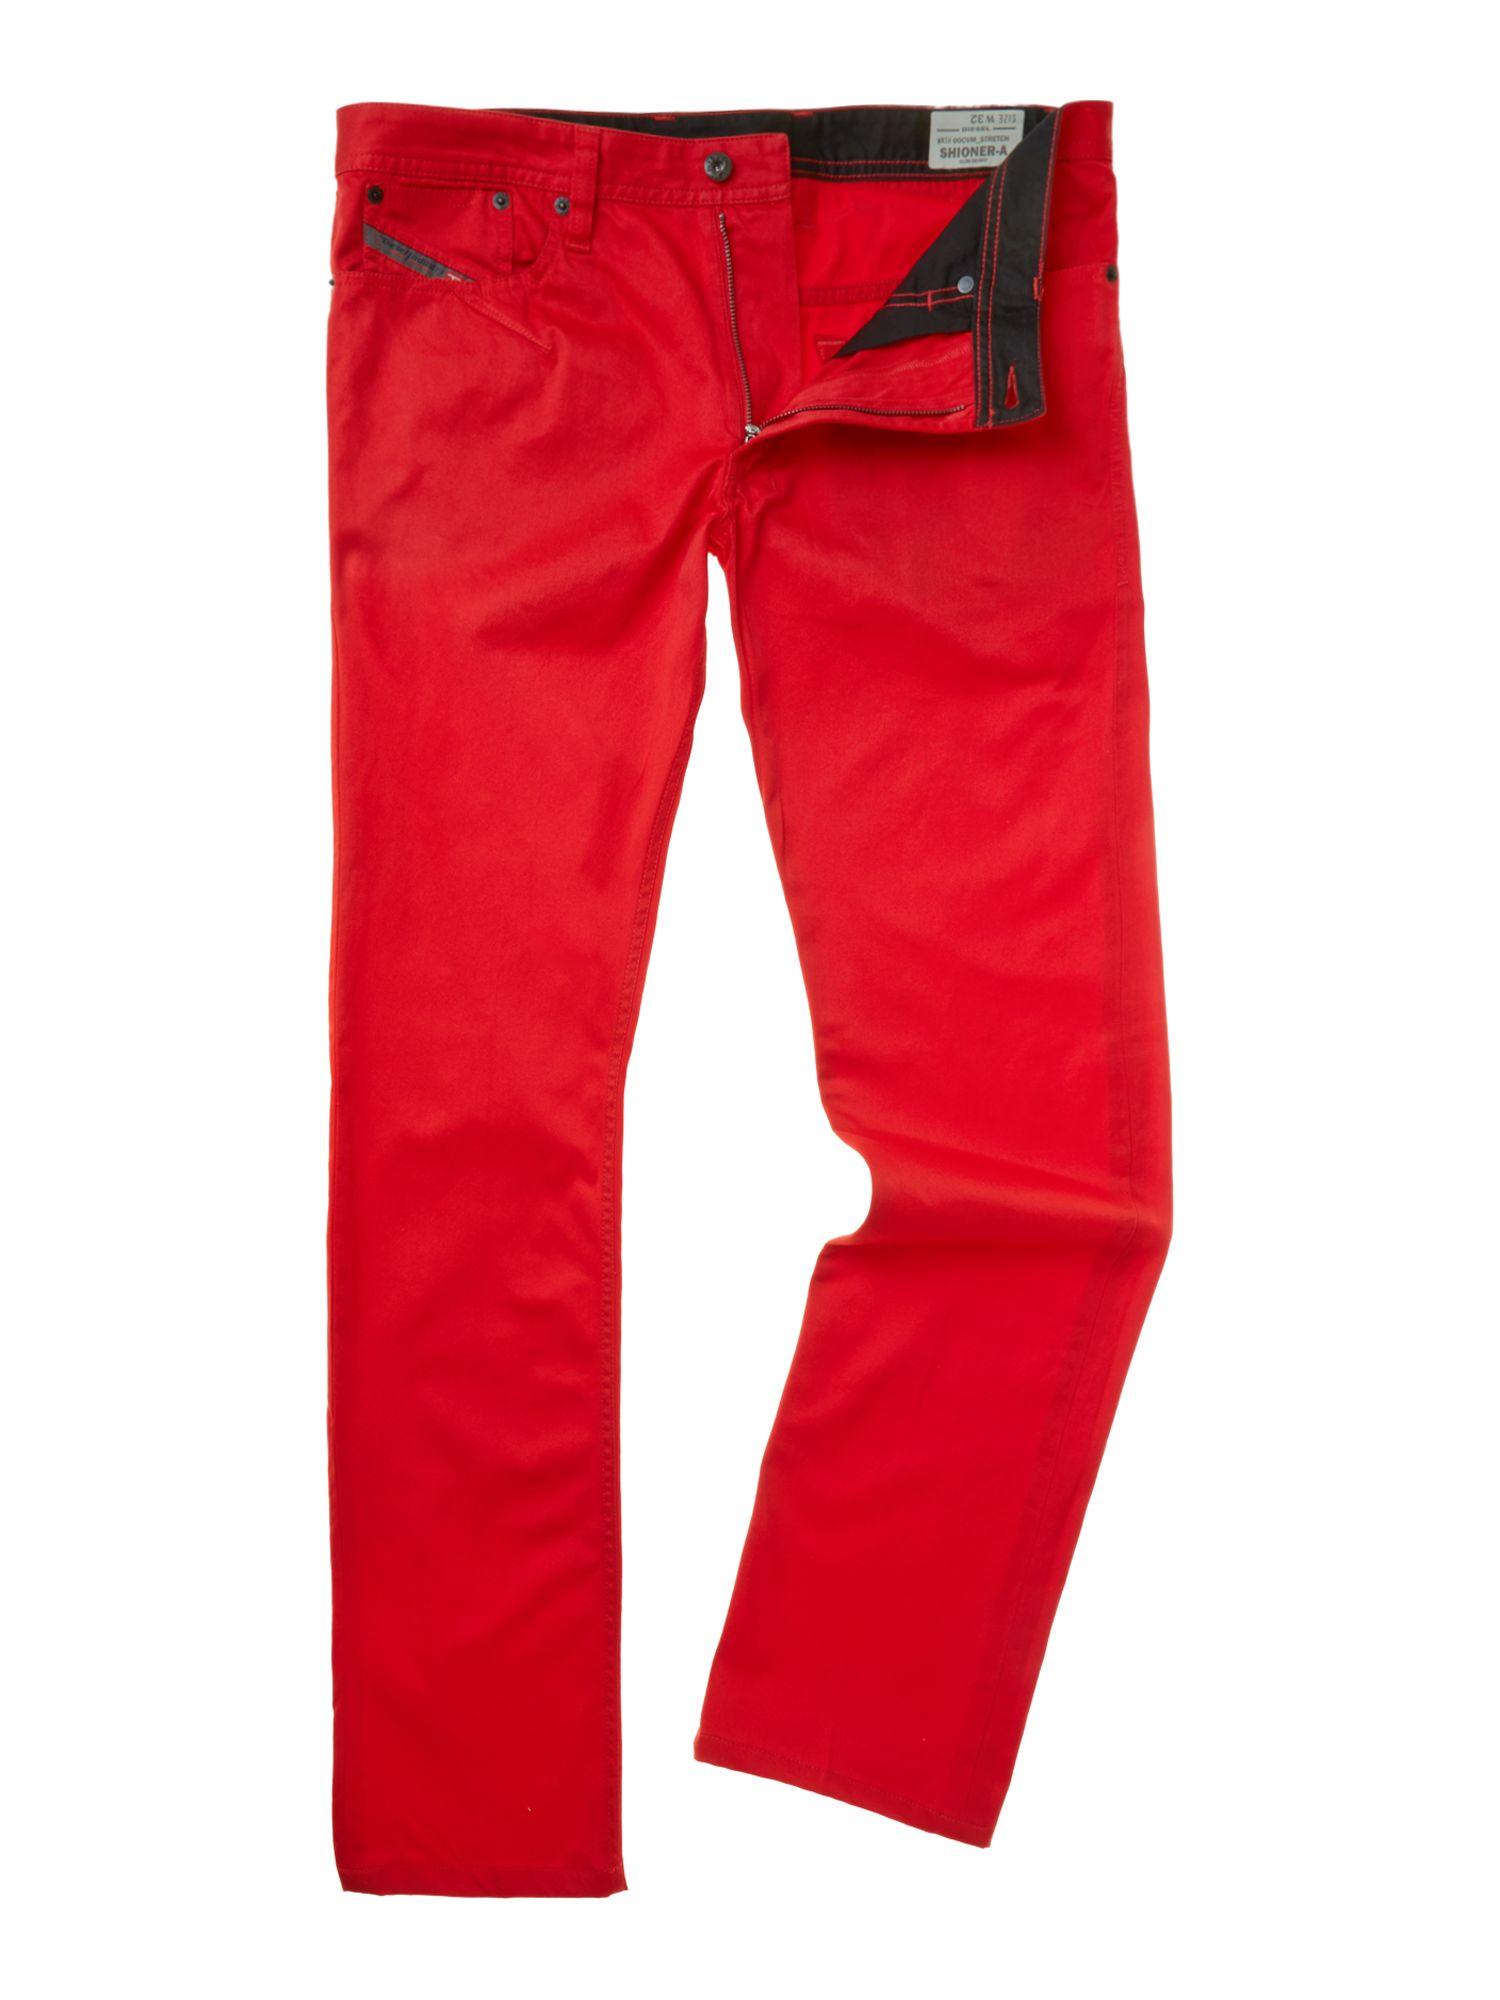 Skinny leg zip trousers